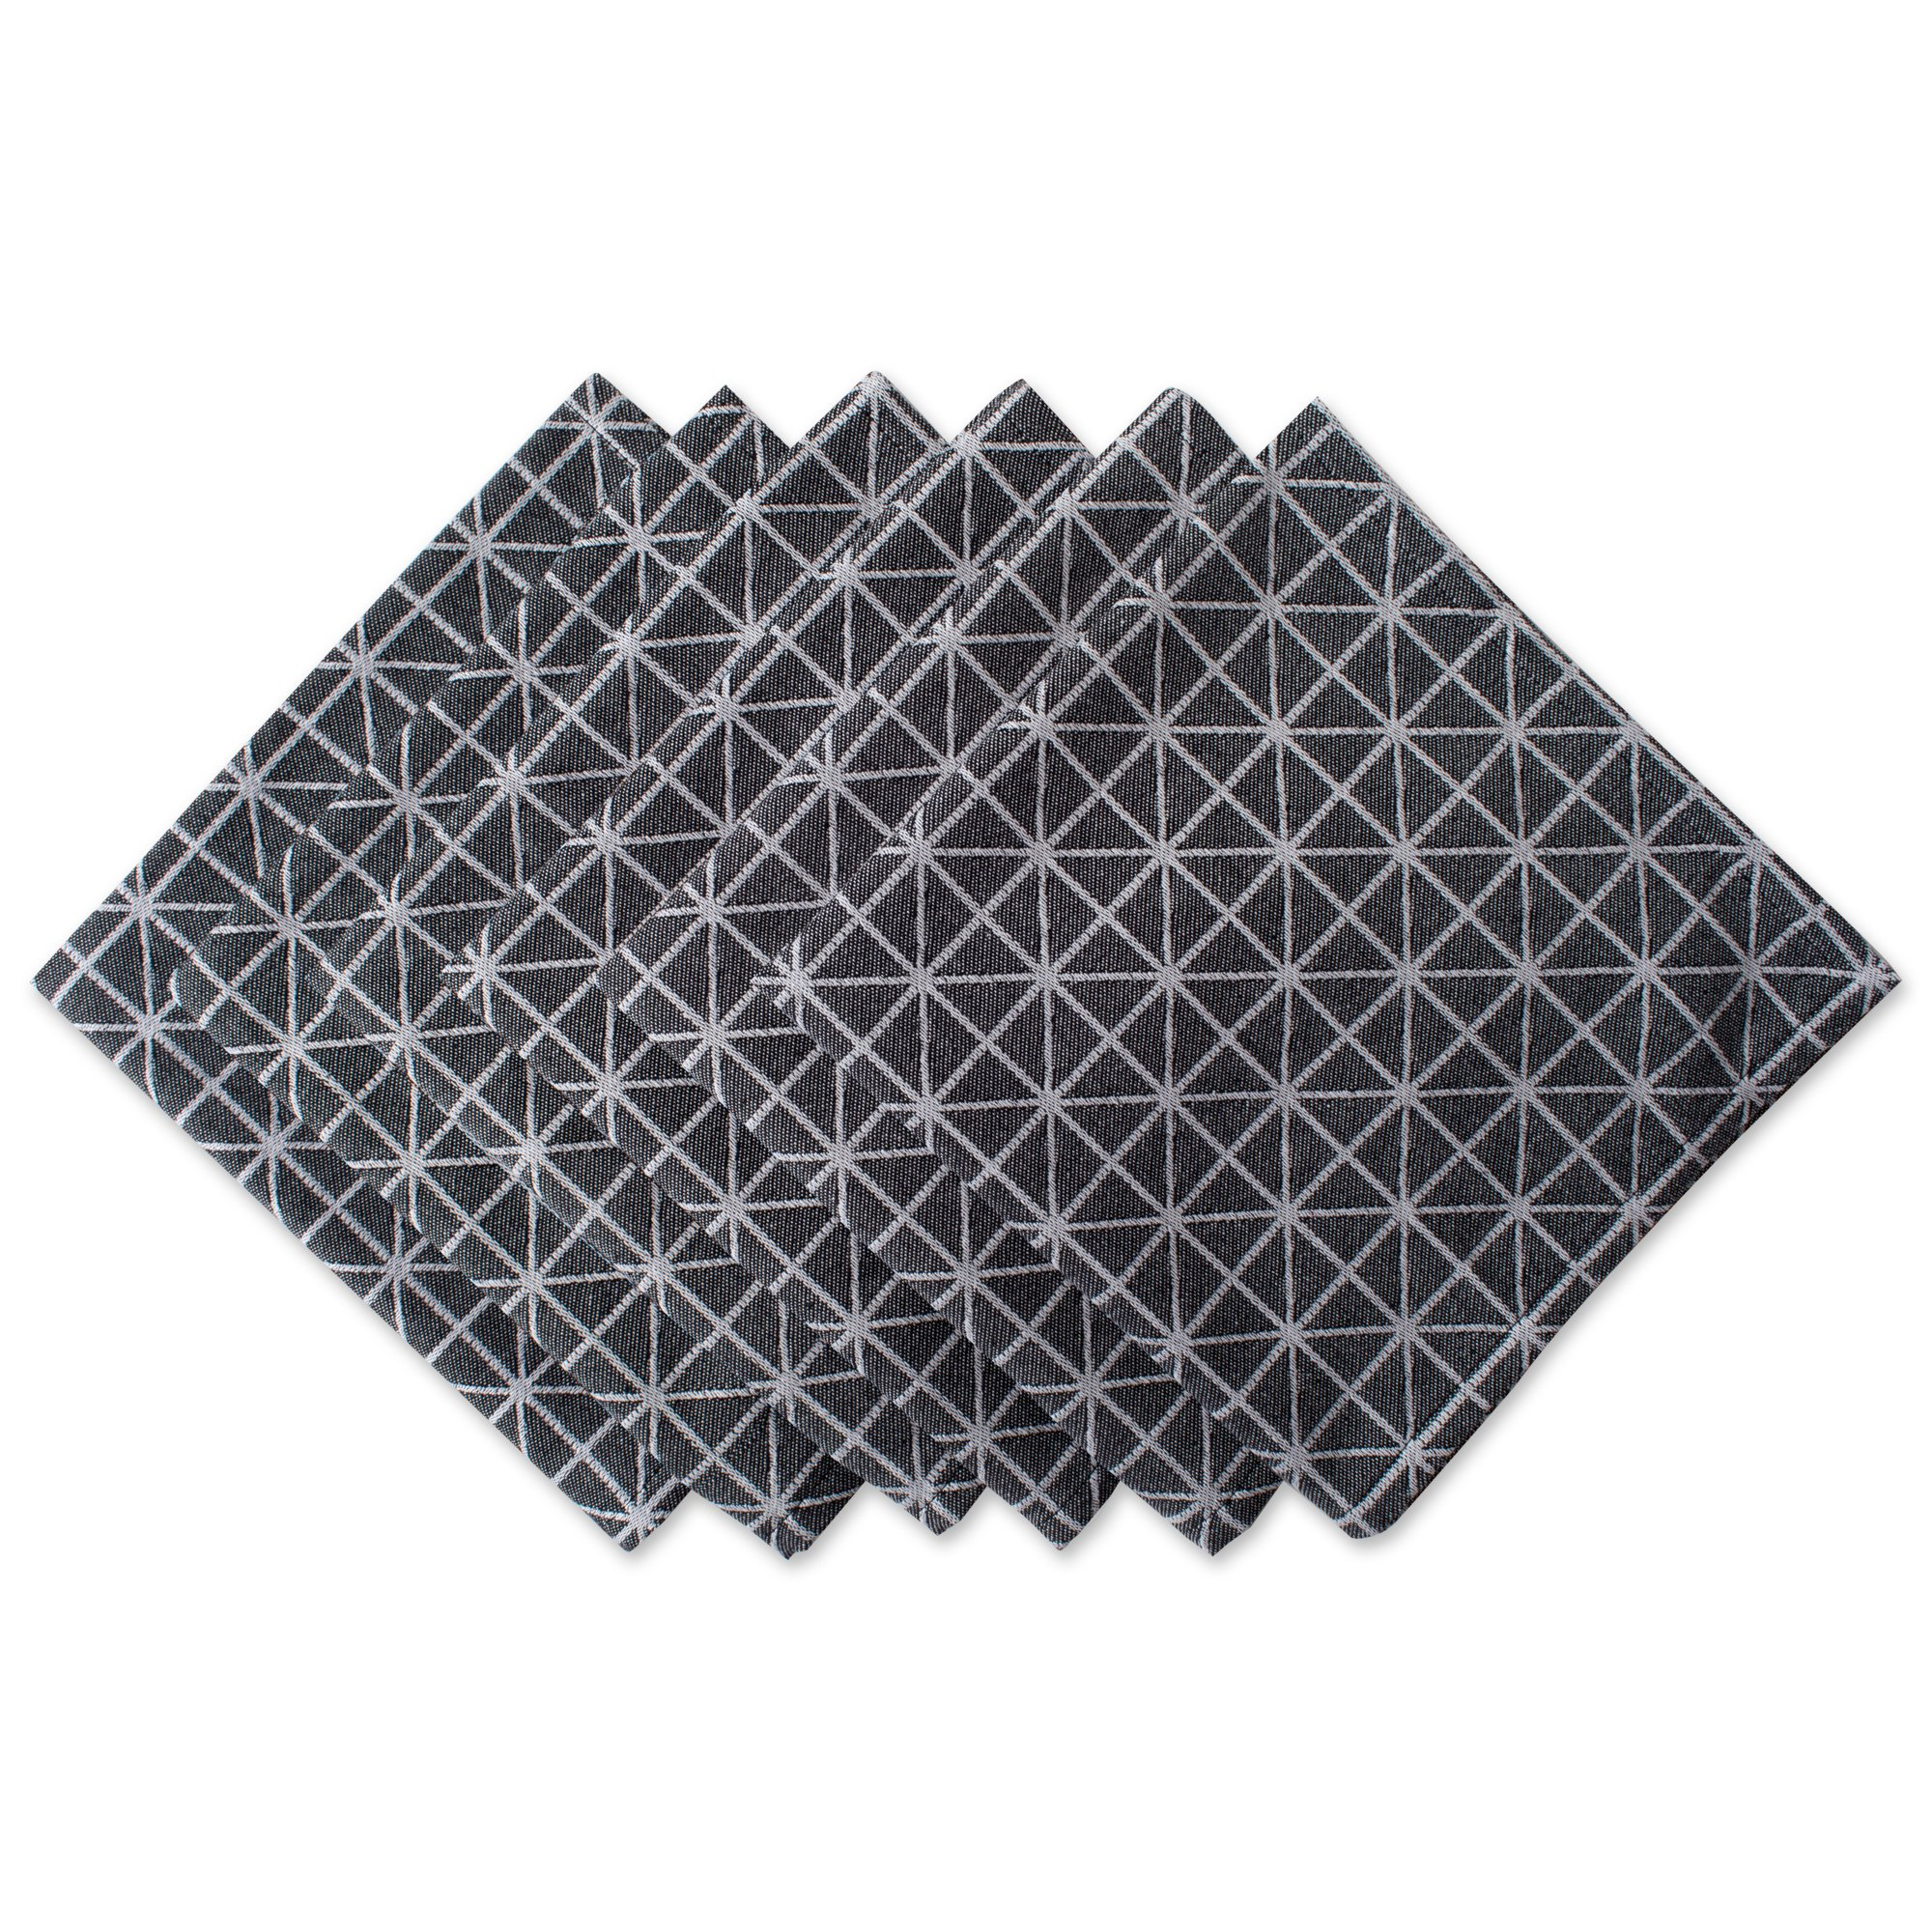 DII Oversized 20x20'' Cotton Napkin, Pack of 6, Black and White Triangle - Perfect for Special Occasions, Modern Décor, Catering Events, or Everyday Use